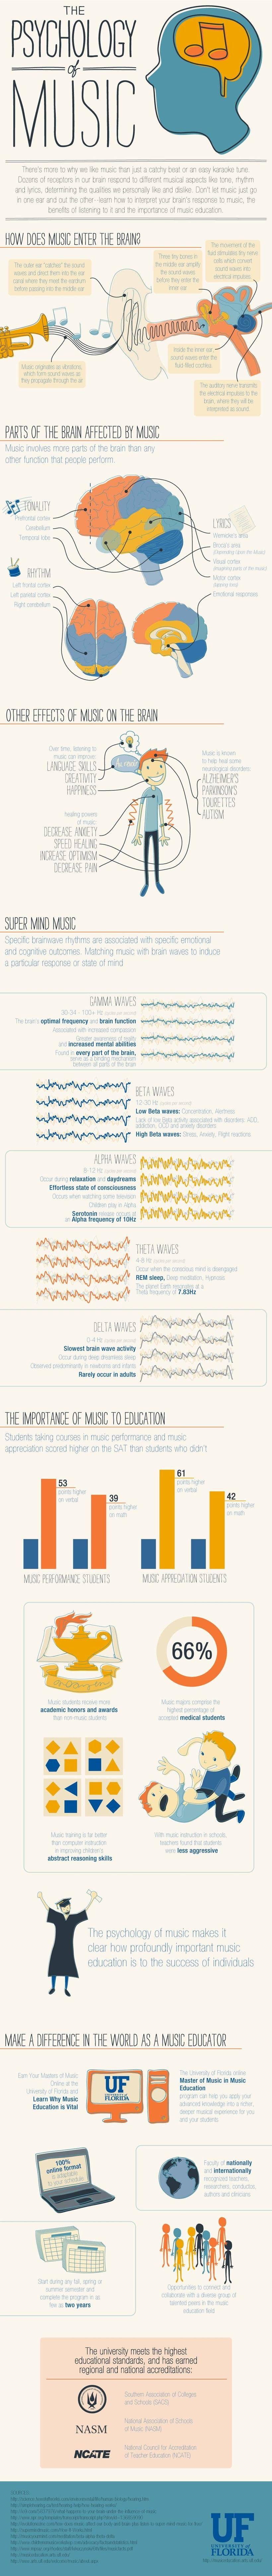 the-psychology-of-music